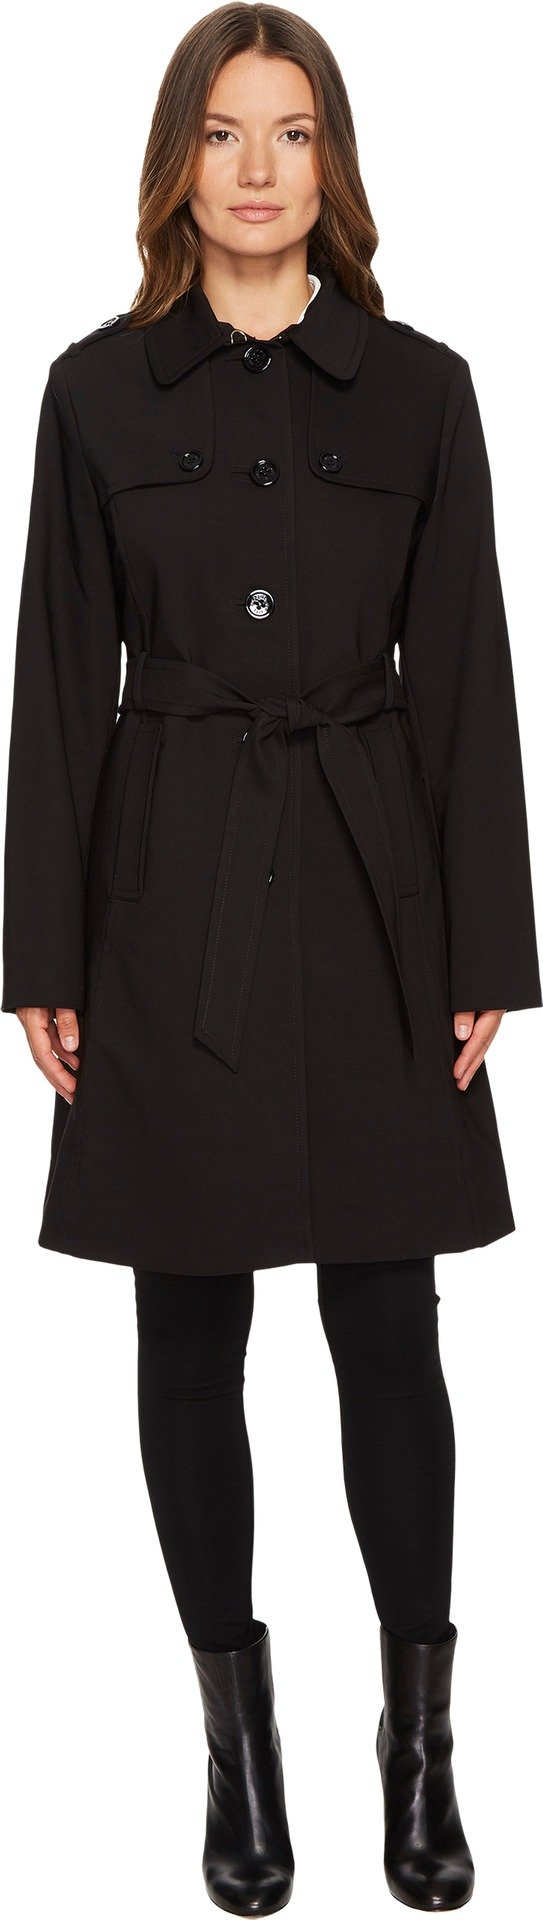 Kate Spade New York Womens Rain Tie Waist Fit and Flare Trench Coat Black MD One Size